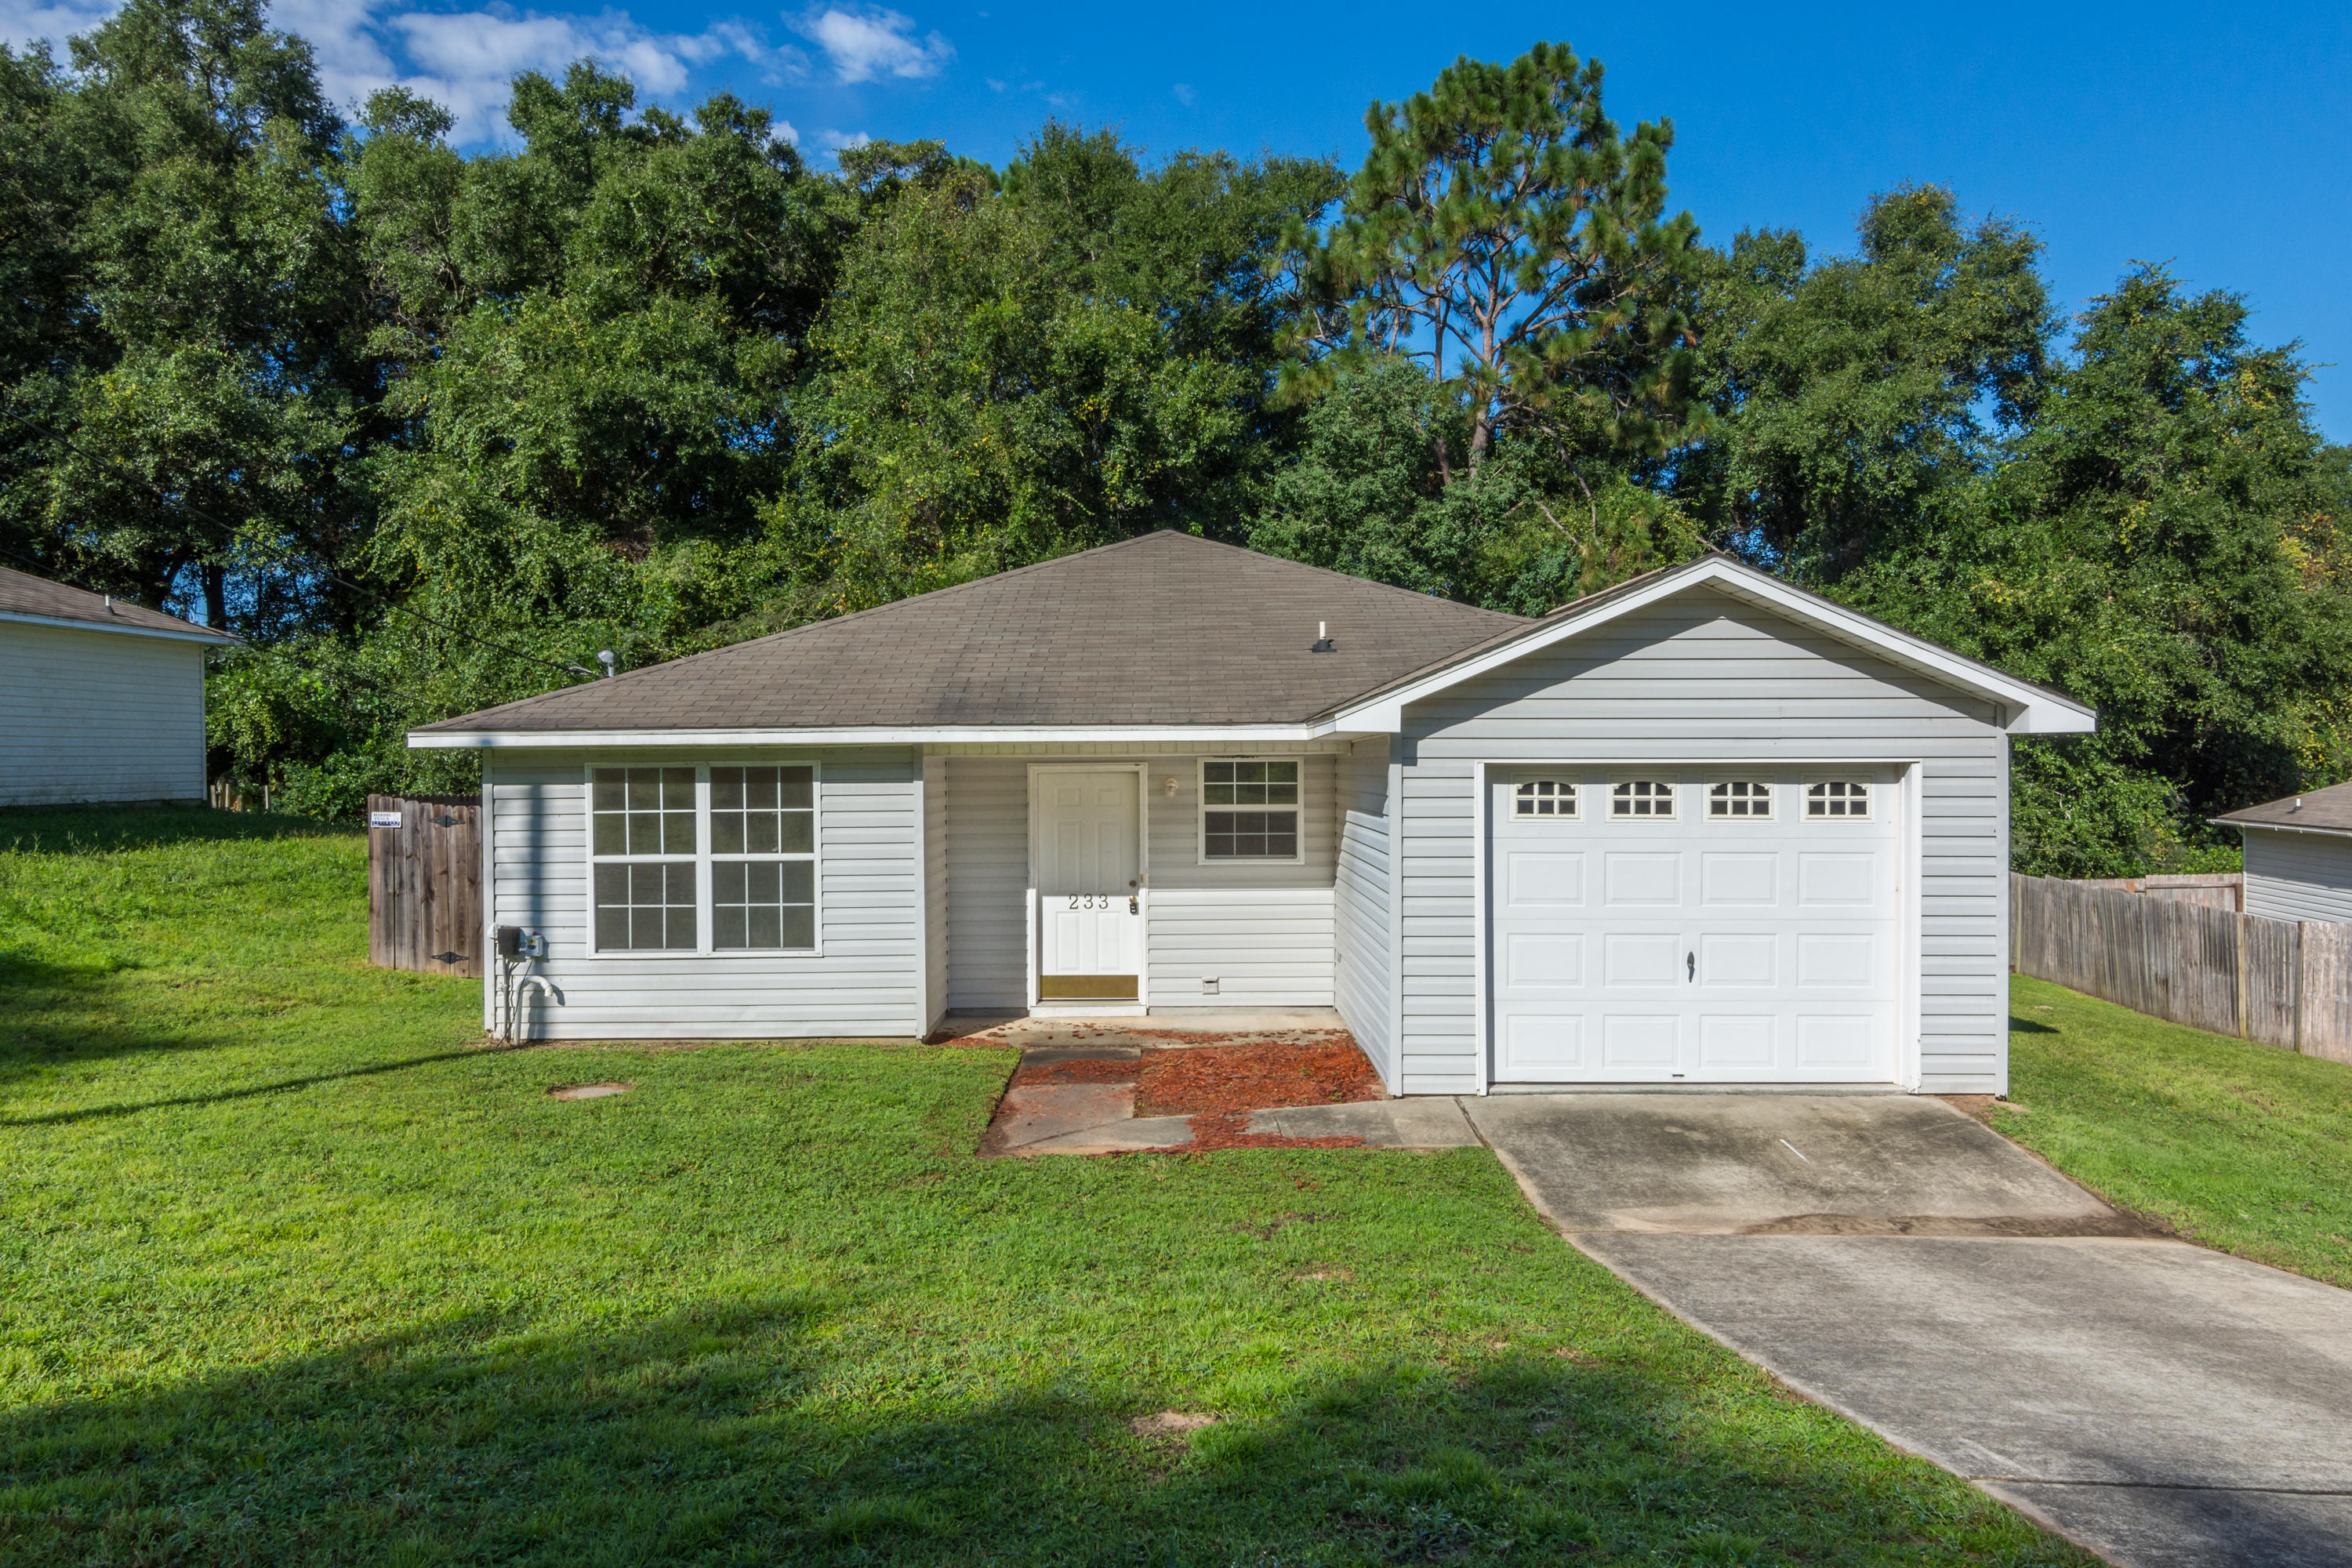 Property Photo For 233 Panama Drive, Crestview, FL 32536, MLS # 807480